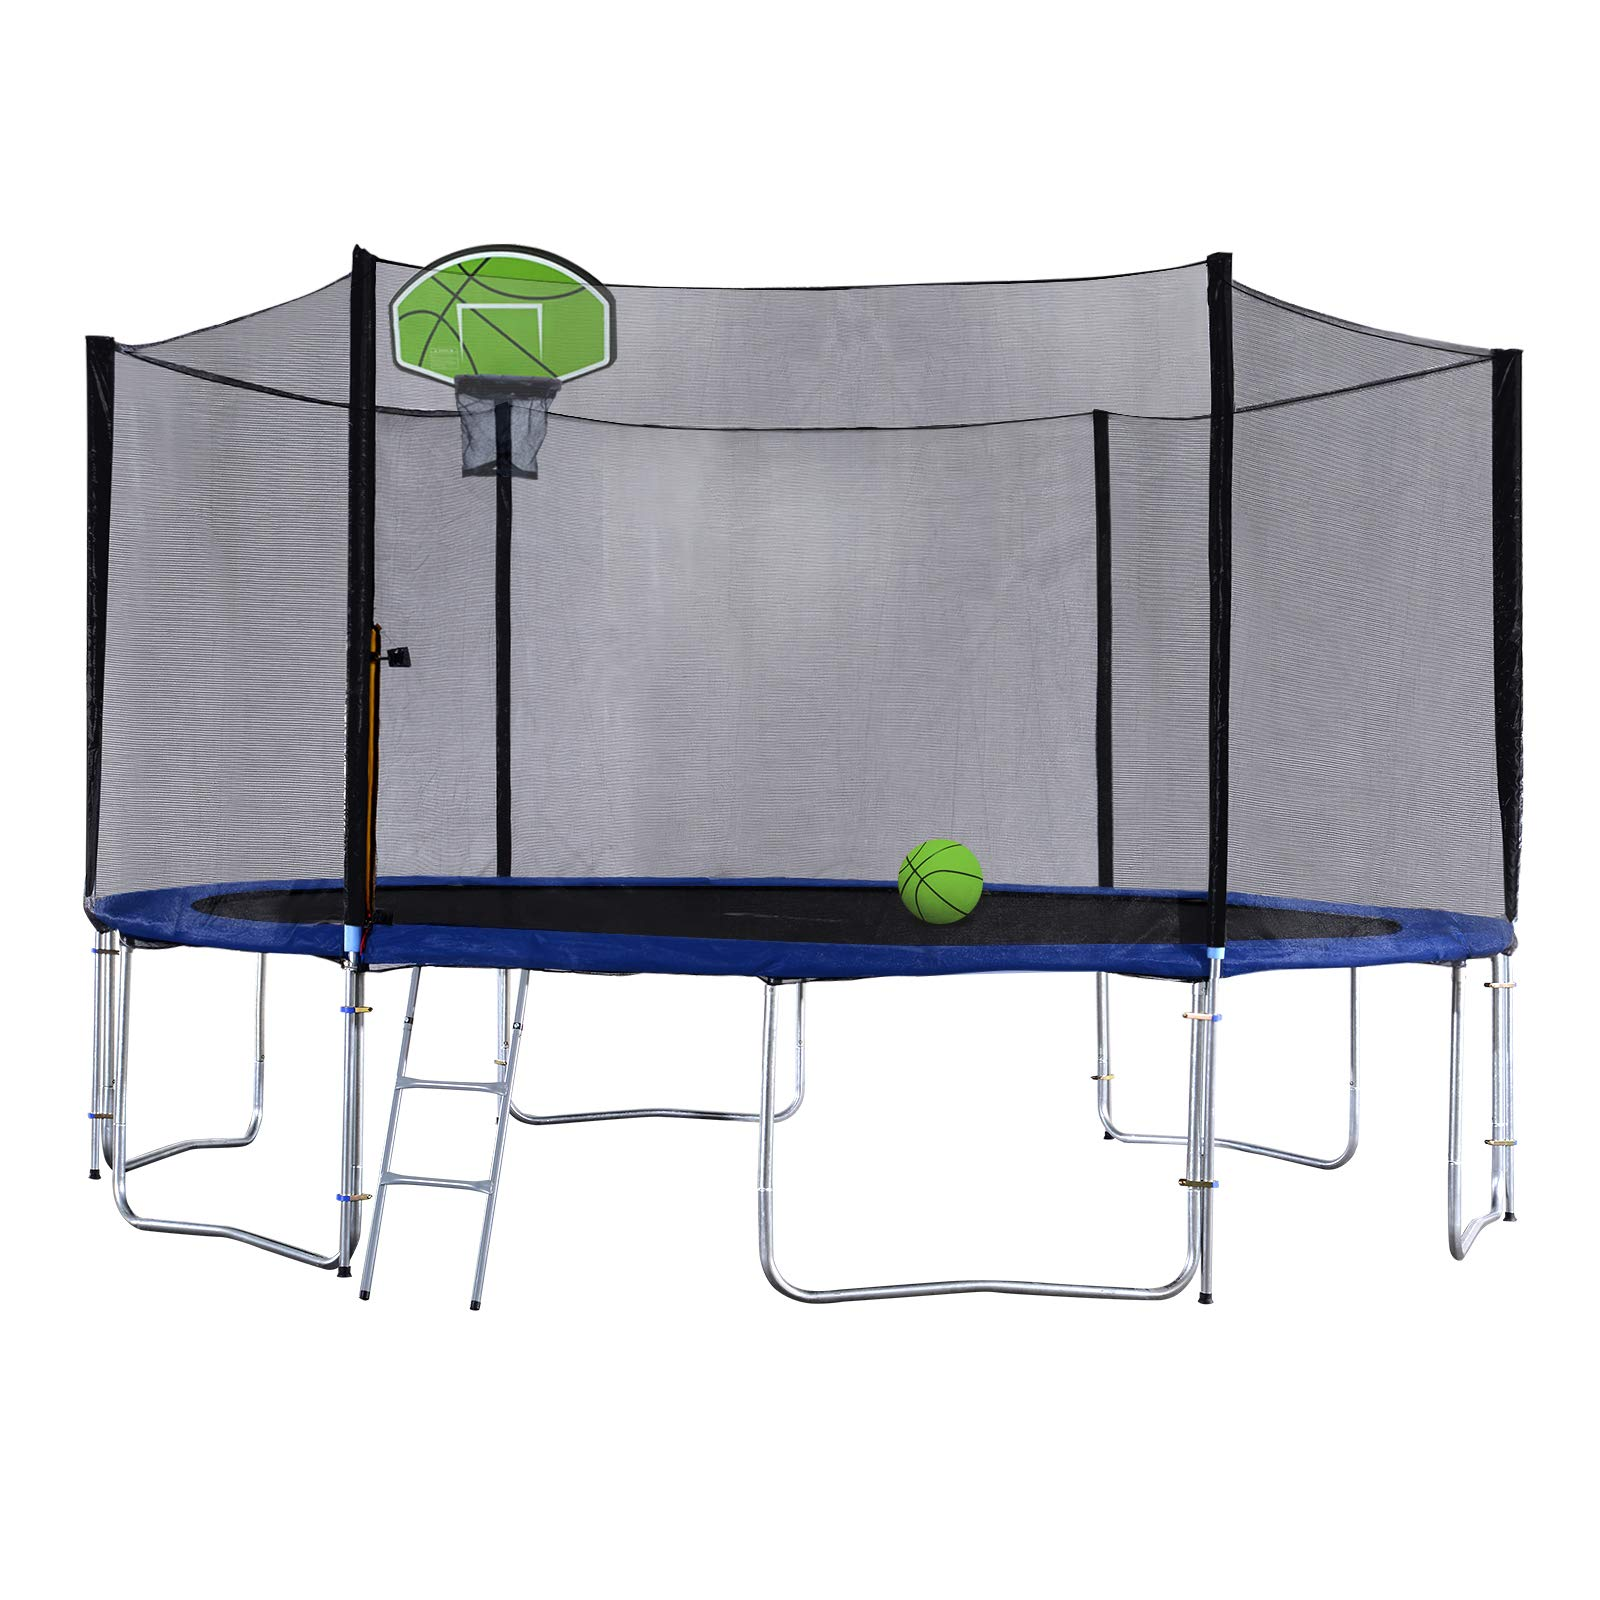 Exacme 12FT Trampoline with Safety Pad,Enclosure Net,Ladder and Green Basketball Hoop (12 FT)